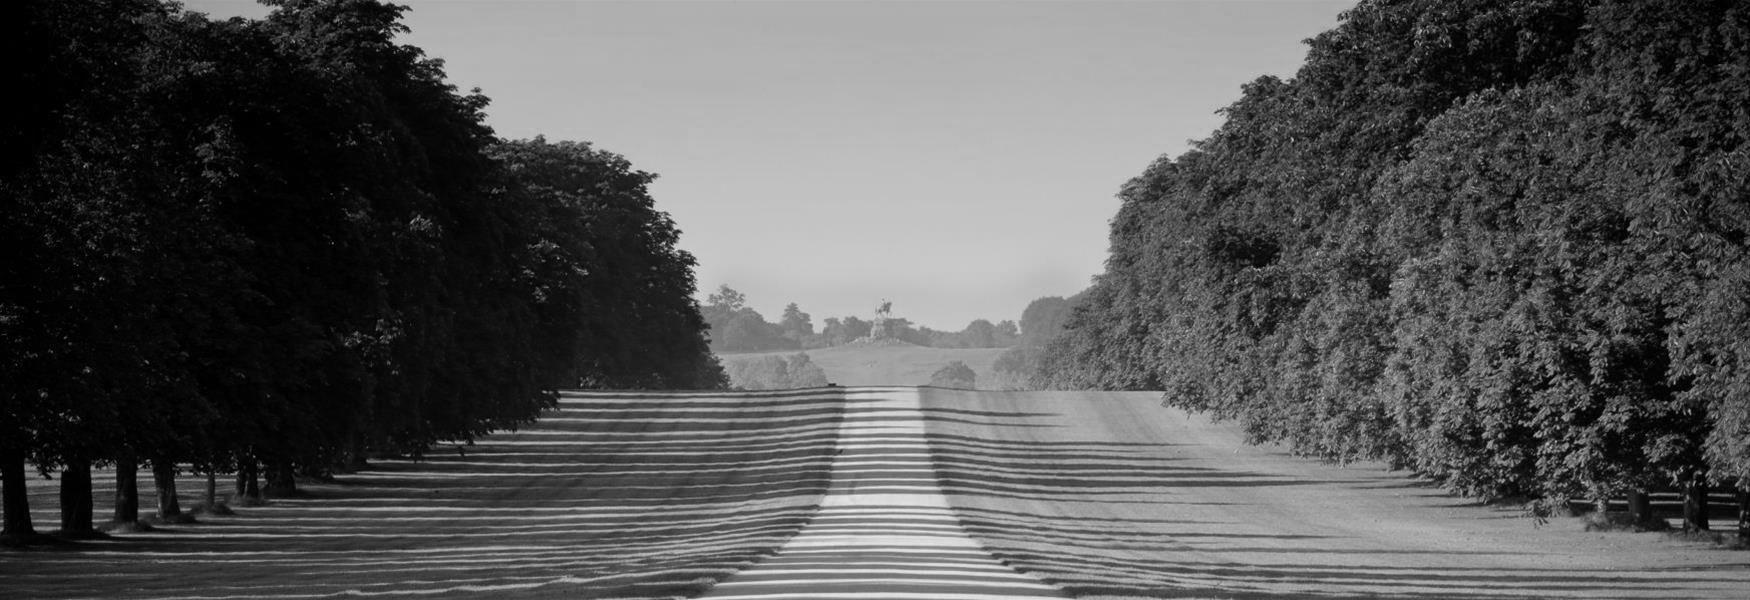 The Long Walk, Windsor Great Park